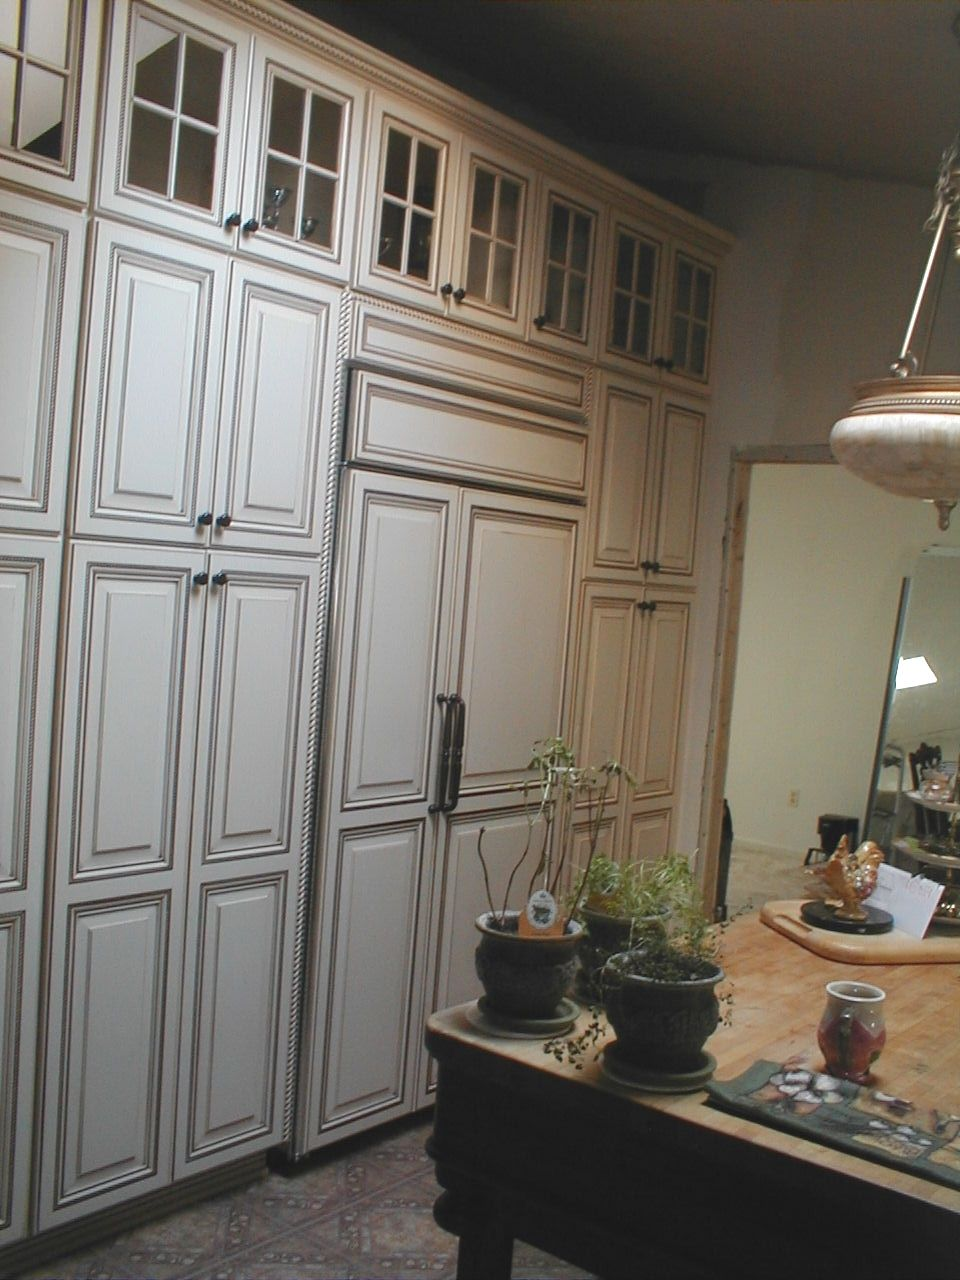 Superb We Can Even Make Your Refrigerator Look Great! Only At Brighton Cabinetry.